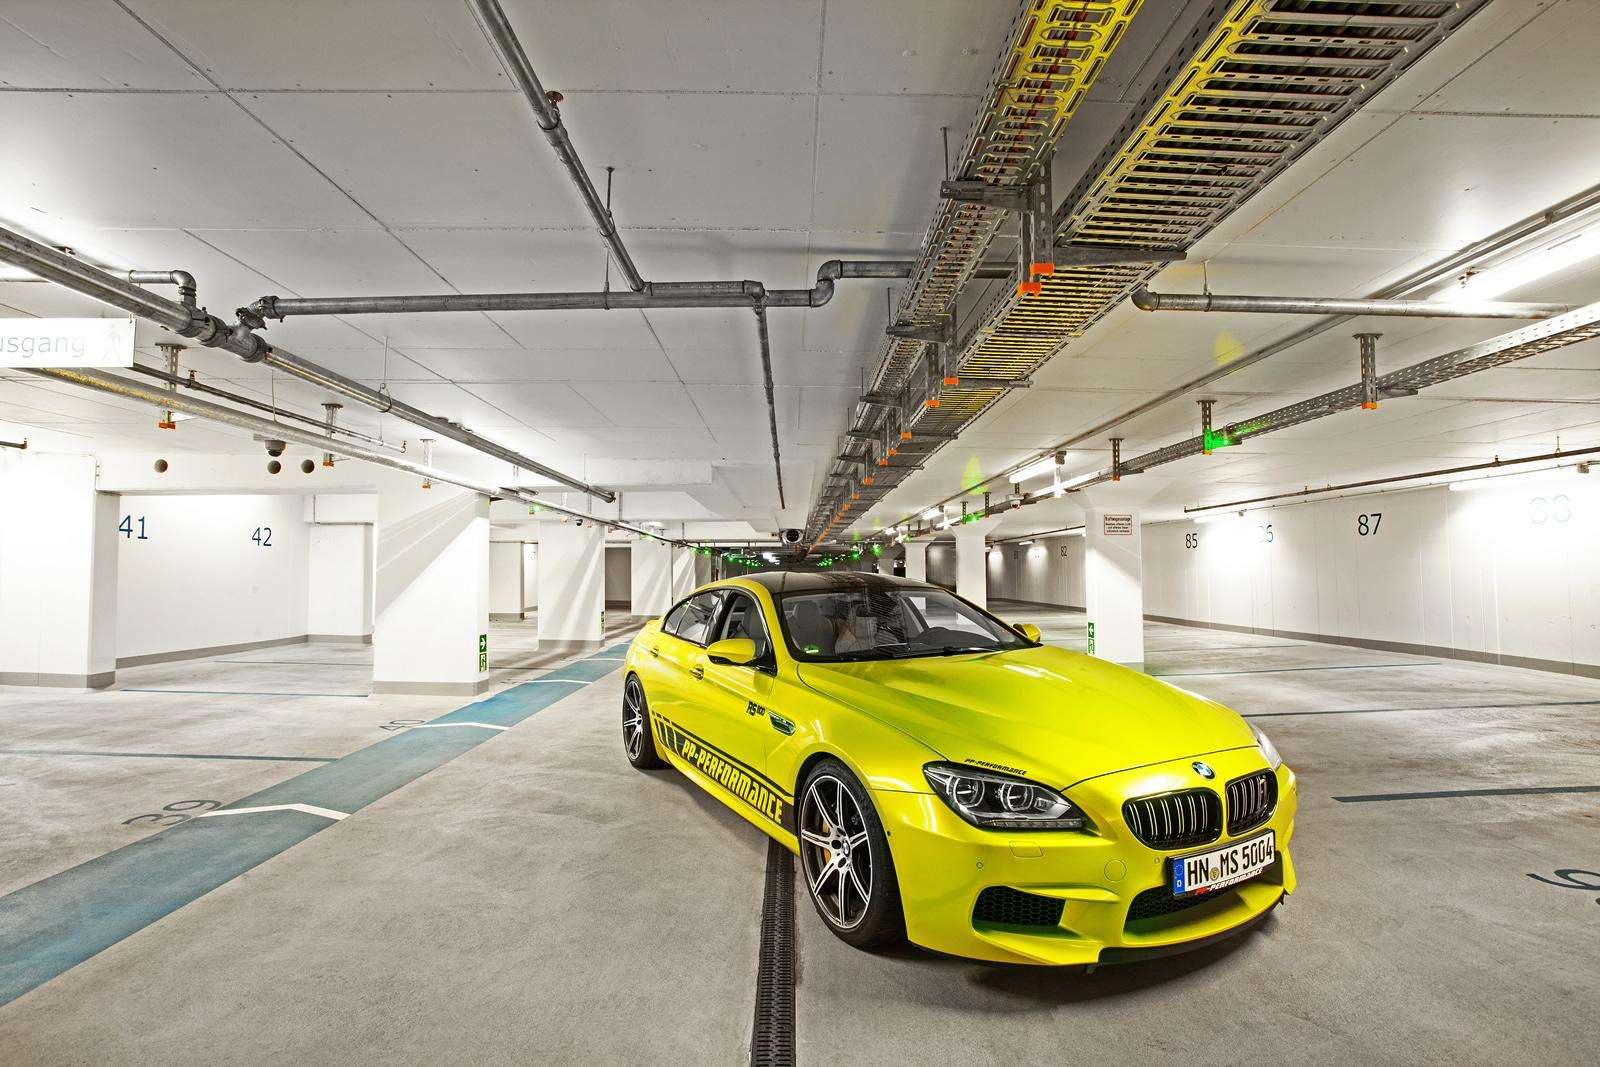 m6-ppperformance_06